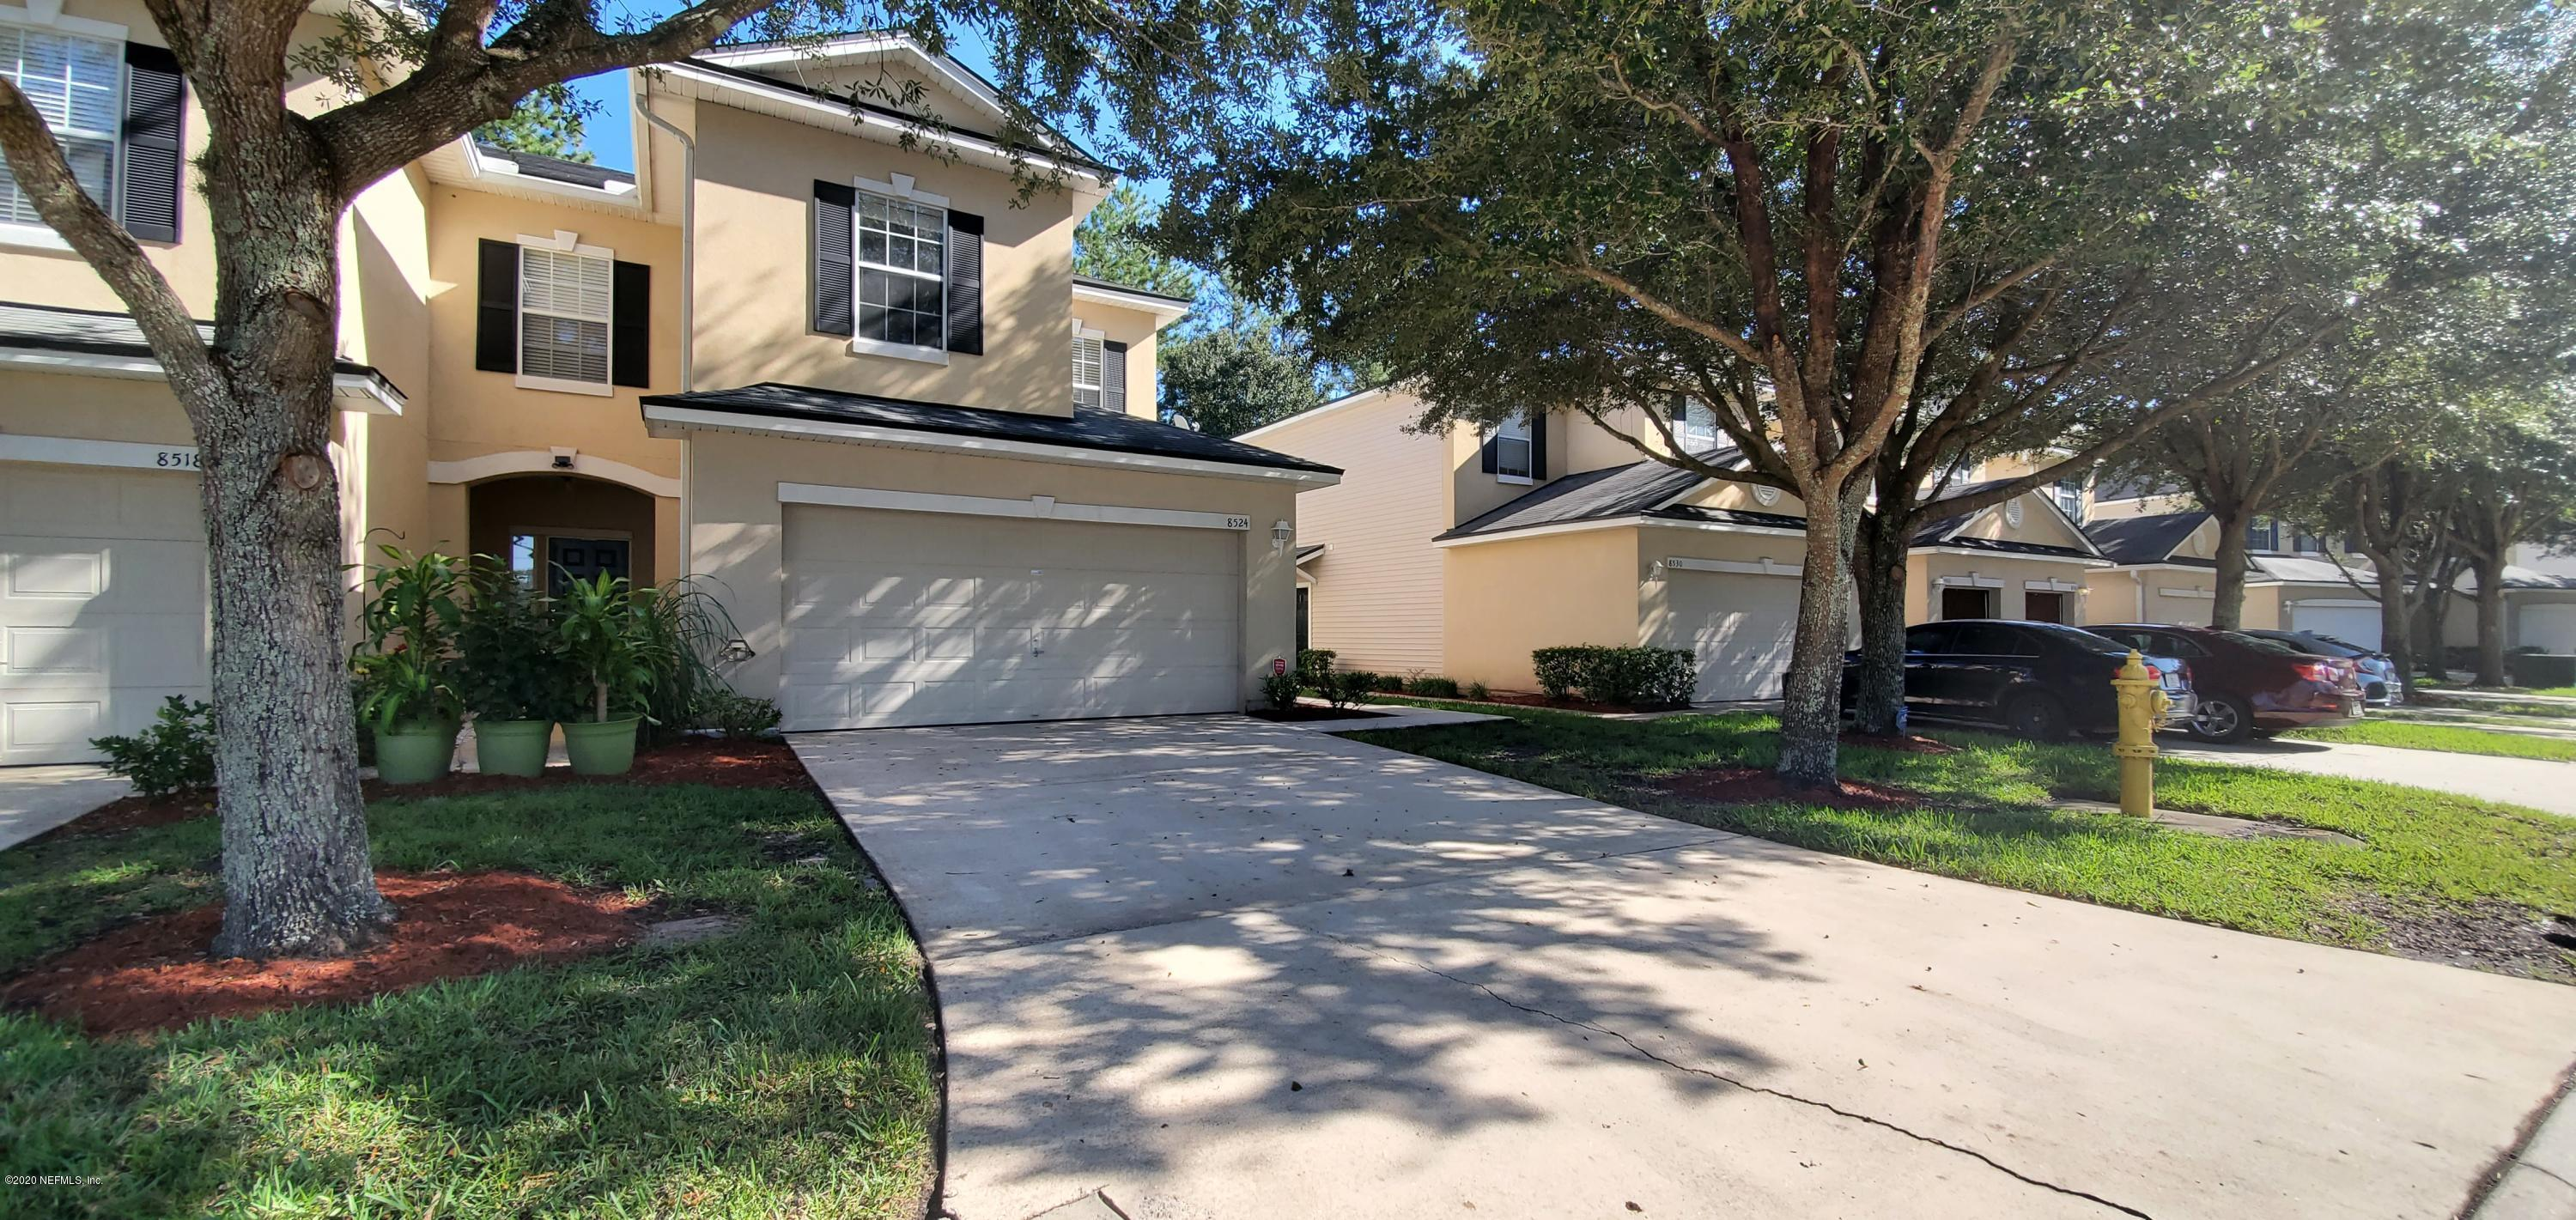 8524 TOWER FALLS, JACKSONVILLE, FLORIDA 32244, 3 Bedrooms Bedrooms, ,2 BathroomsBathrooms,Rental,For Rent,TOWER FALLS,1083469